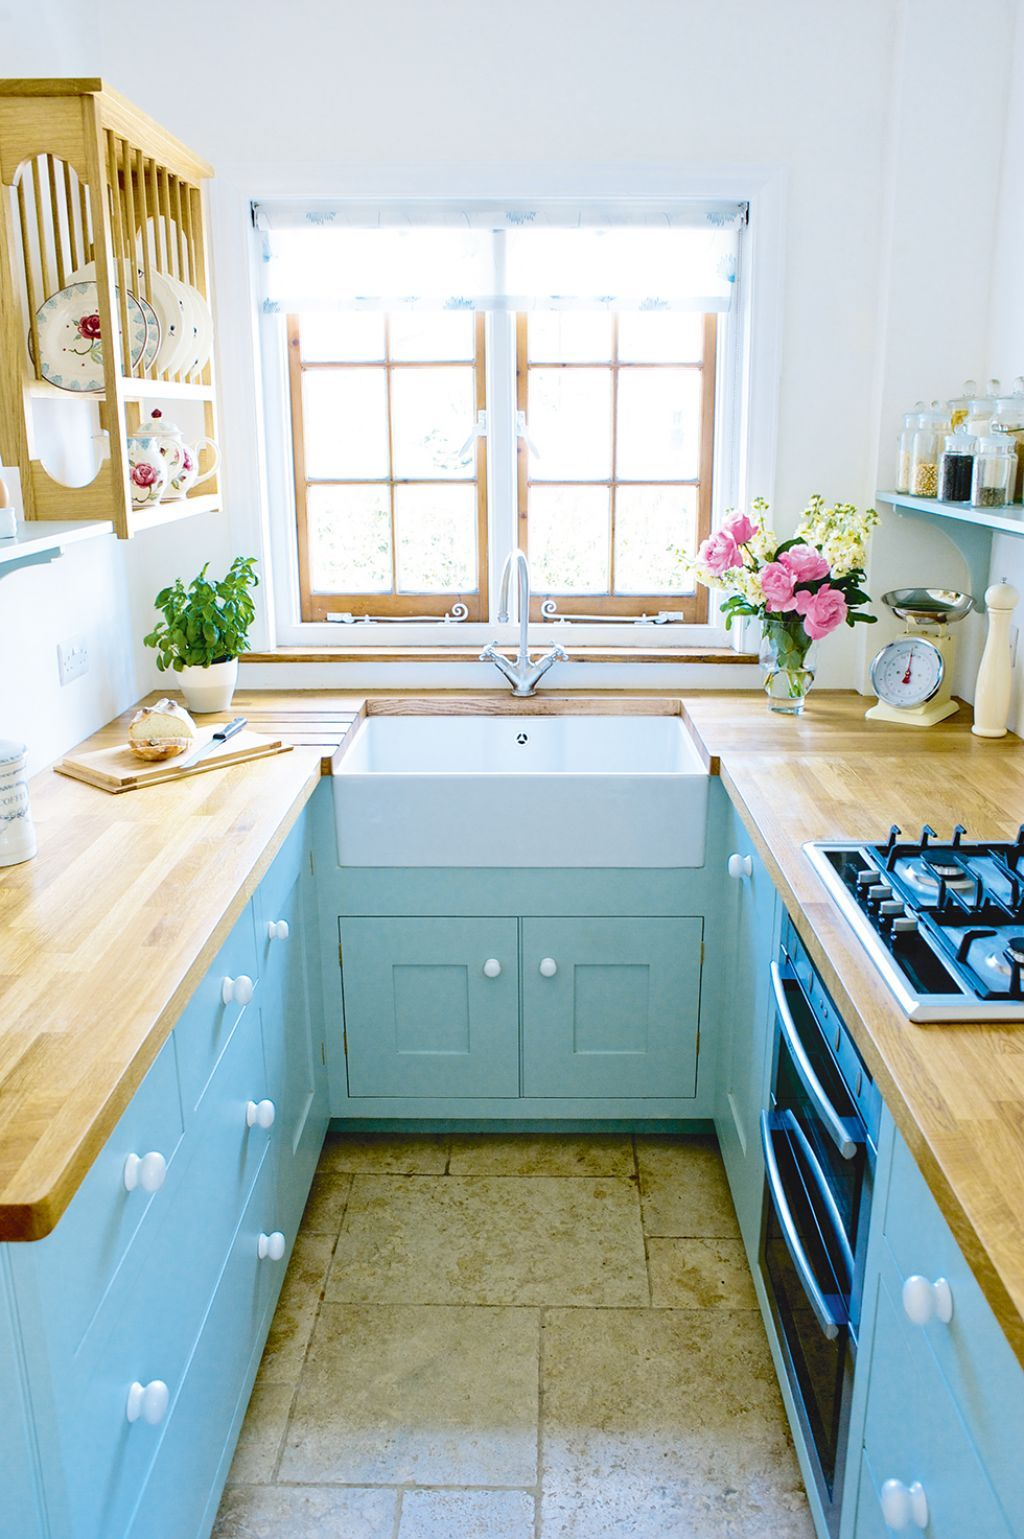 Galley Kitchen With Apron Sink And Blue Cabinets : Make A Galley ...